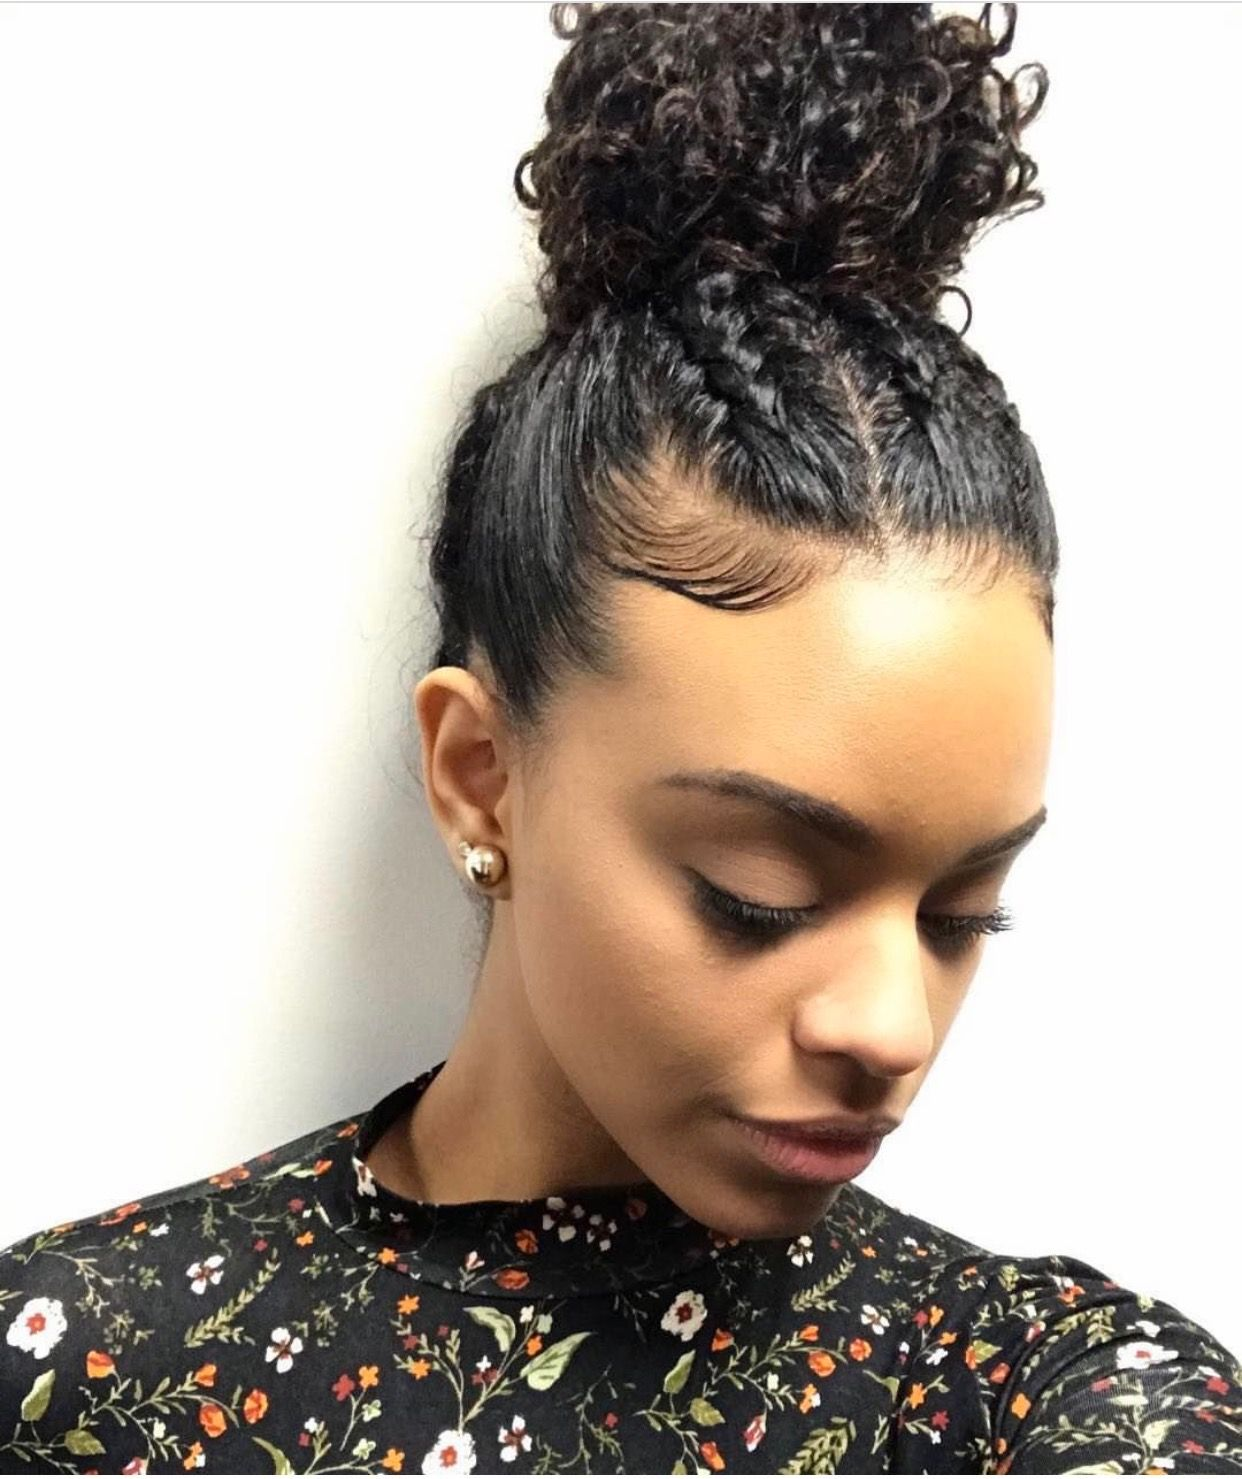 pin by noell resil on hair | curly hair styles, hair styles